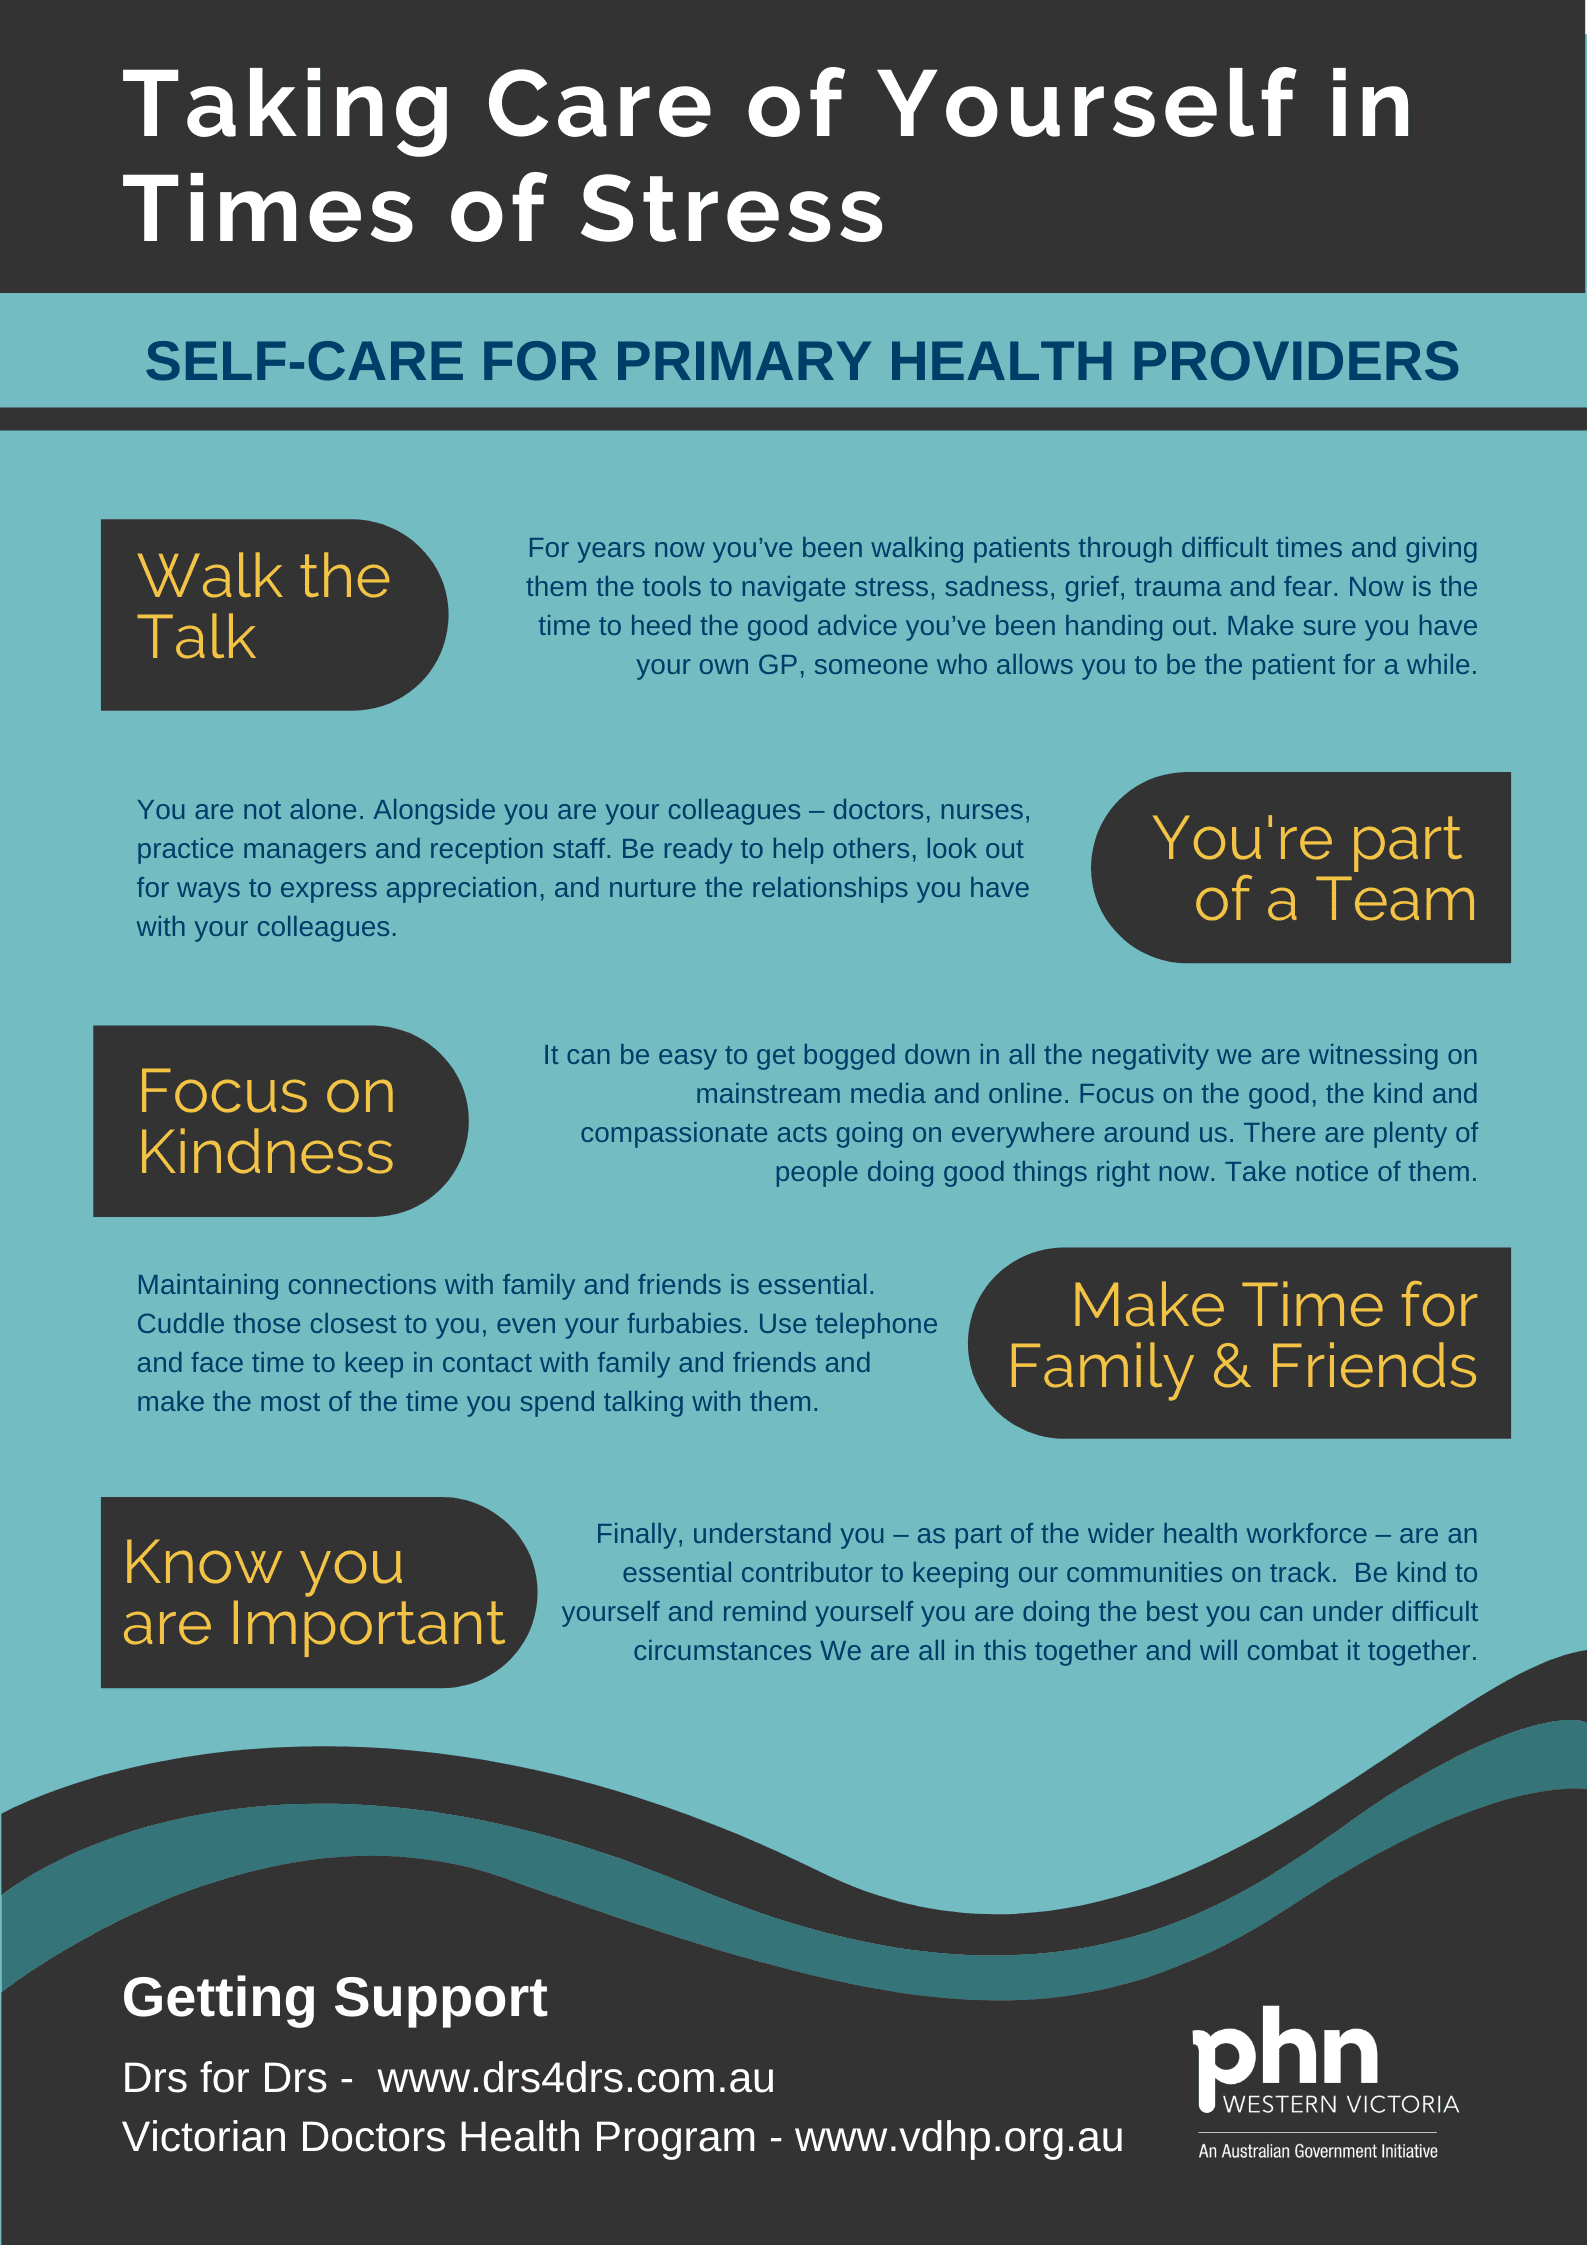 Taking Care of Yourself in Times of Stress - Self Care for Primary Health Providers